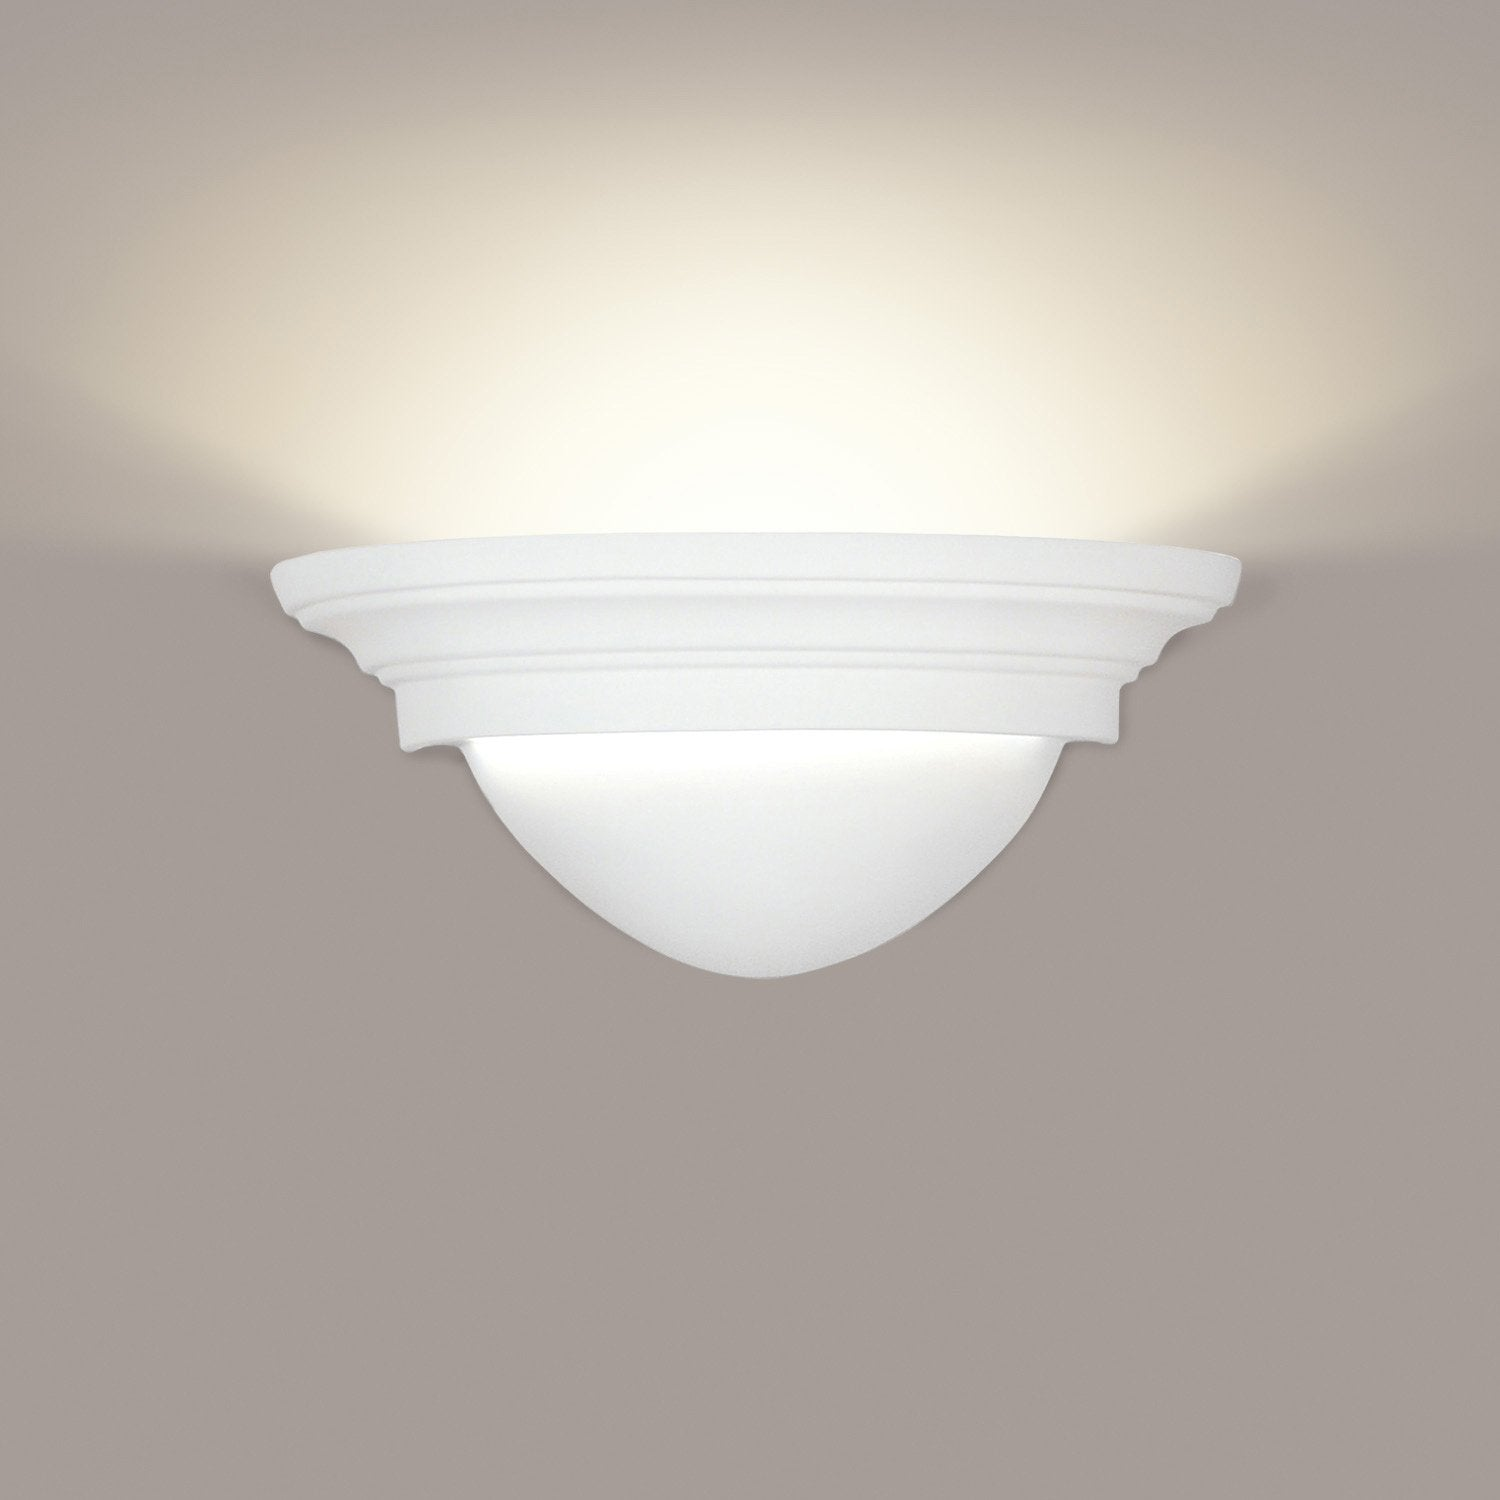 A19 101-WG Islands of Light Collection Minorca/Majorca White Gloss Finish Wall Sconce